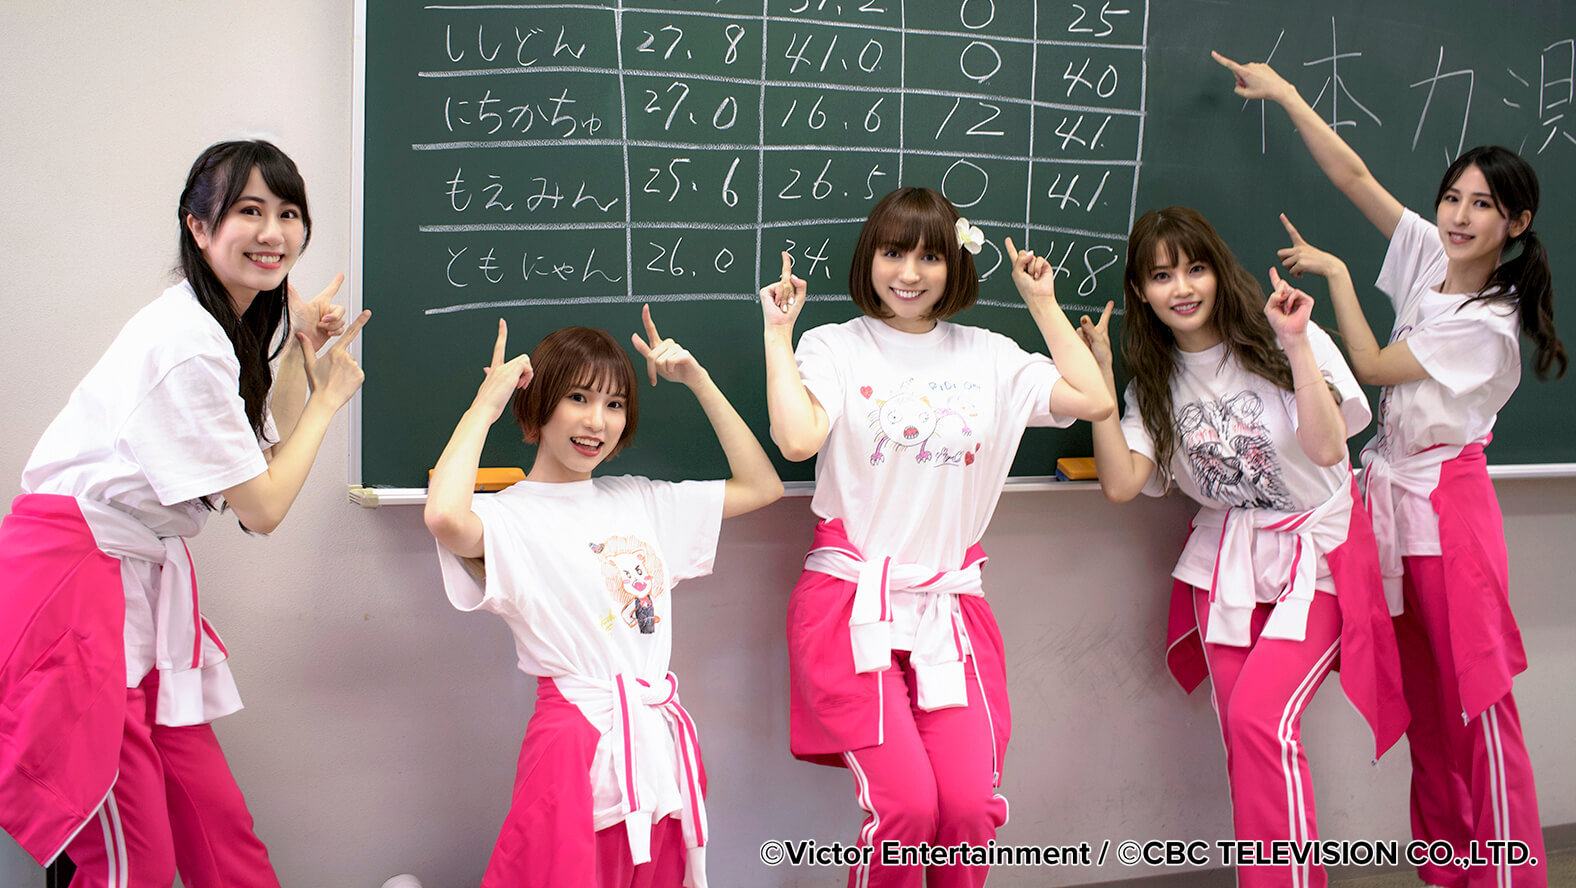 The members of voice actress-girl band PsyChe wore custom-made T-shirts printed with the Roland DG BT-12 direct-to-garment printer.